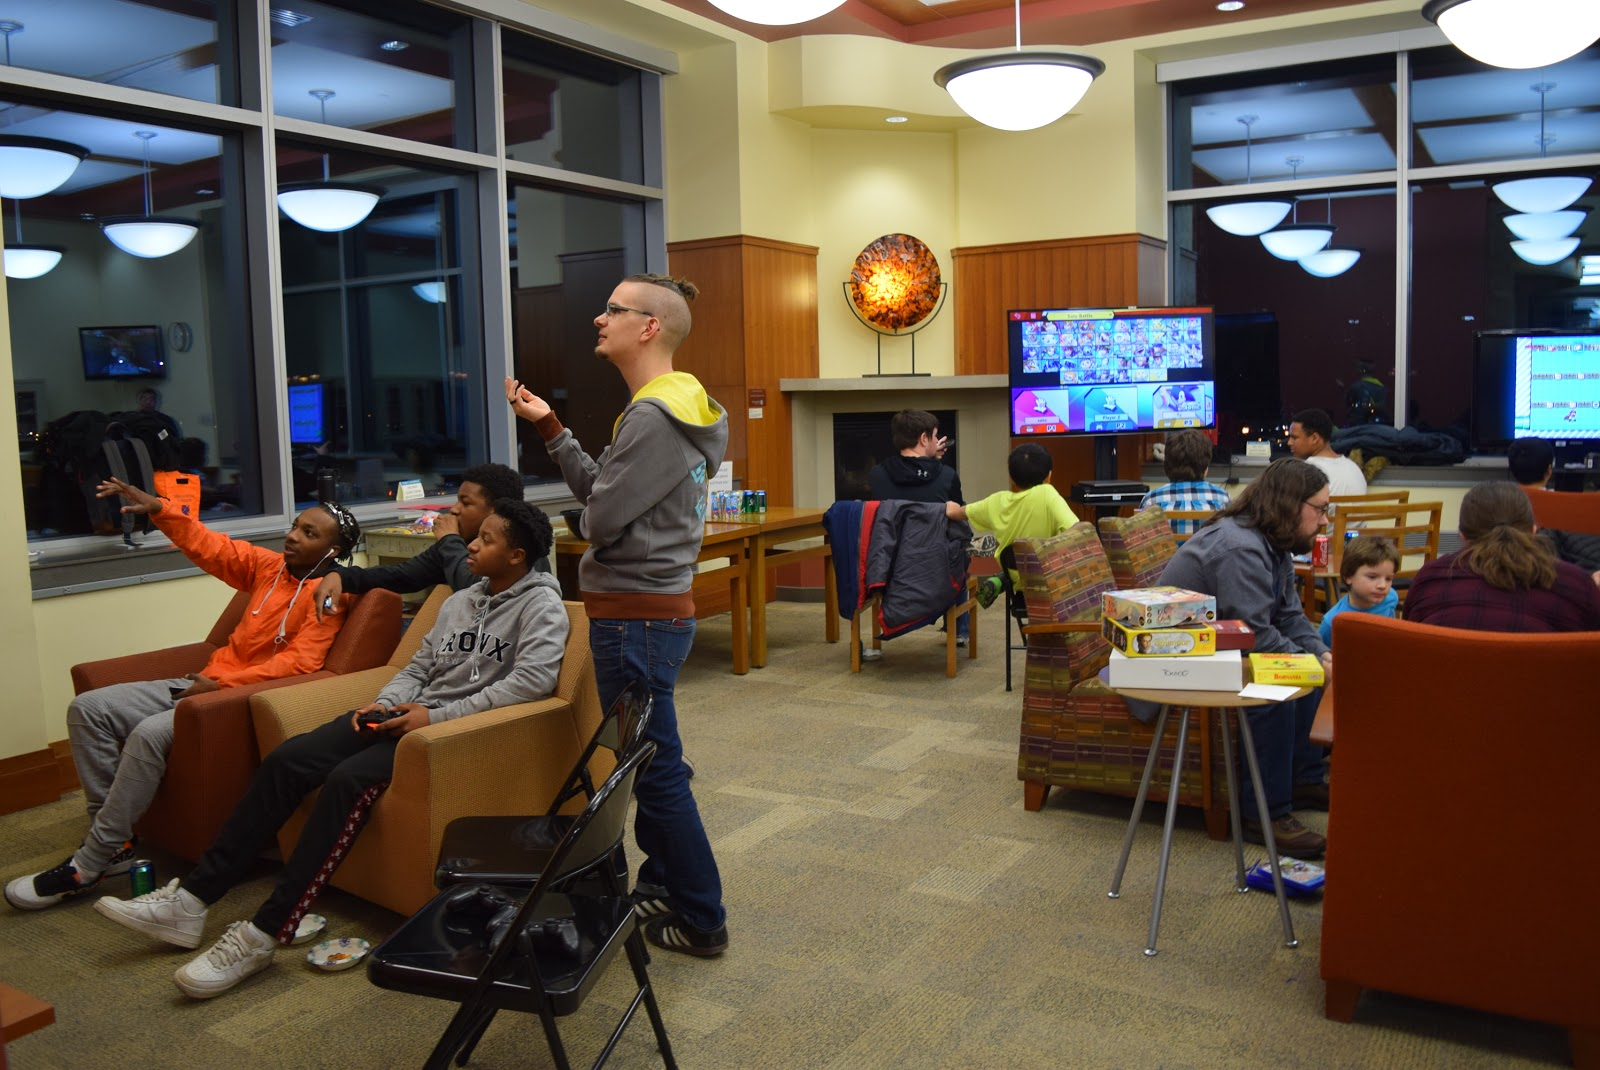 Librarian Zorian Sasyk, standing, with video gamers at Game Night on Feb. 19, 2019. (Margot M. Barry / The Metropolitan)